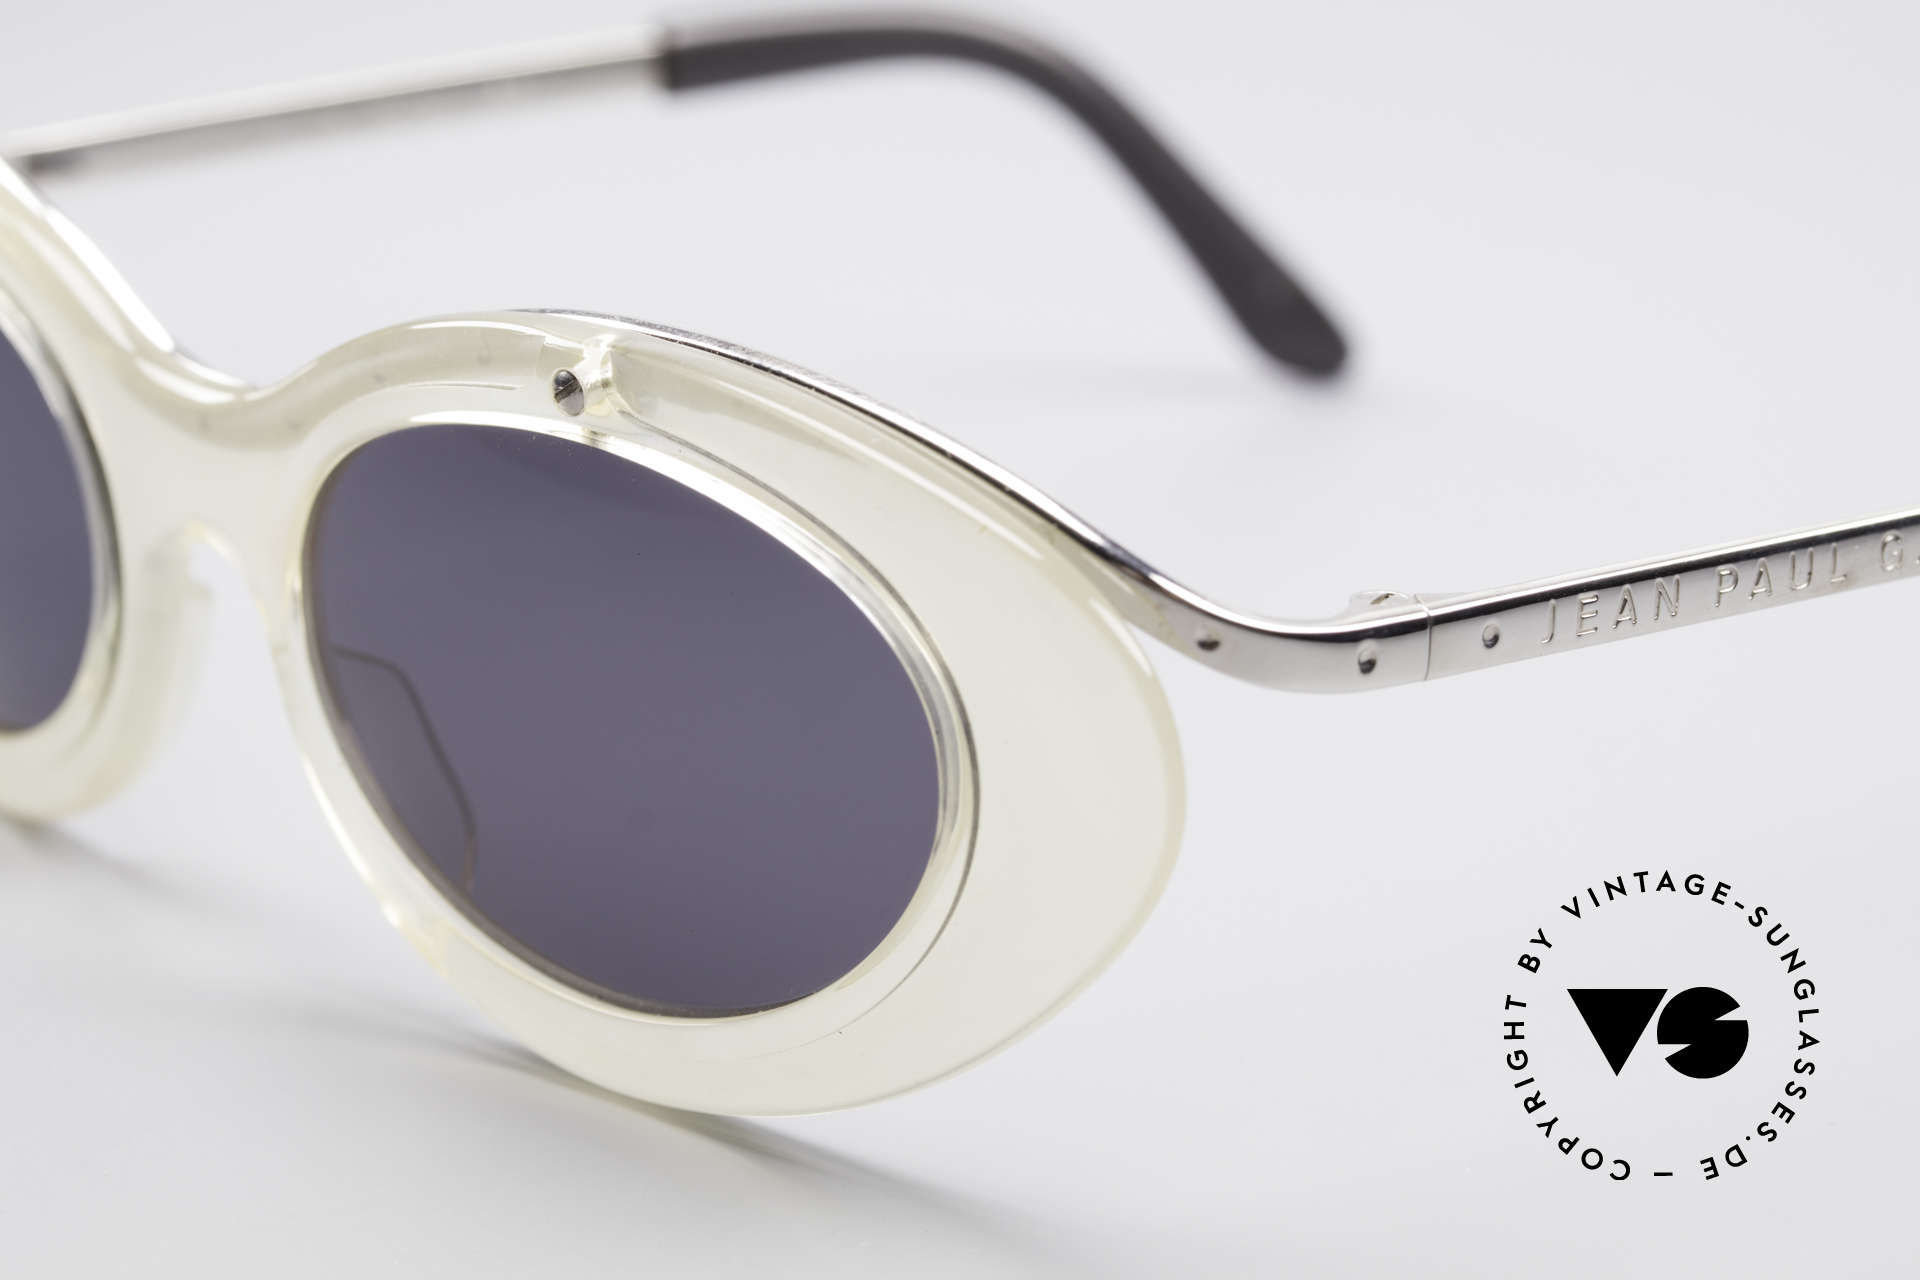 Jean Paul Gaultier 56-7201 Designer Ladies Sunglasses, unused (like all our rare JPG Haute Couture shades), Made for Women